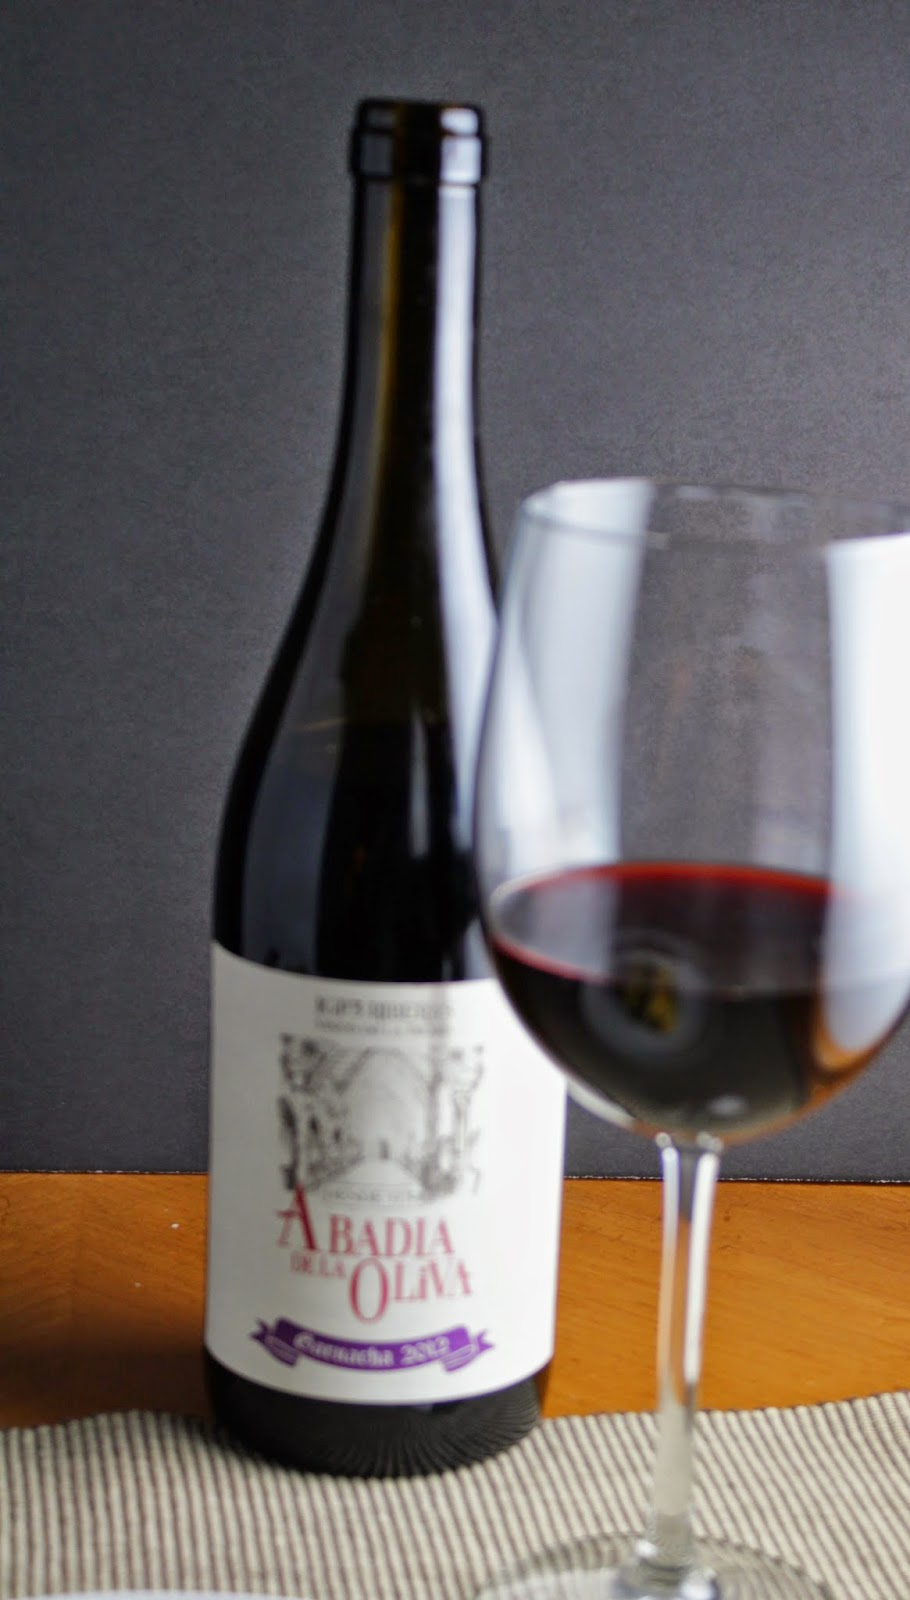 Abadia de la Oliva Garnacha, a good value wine from Spain. Cooking Chat #winePW post